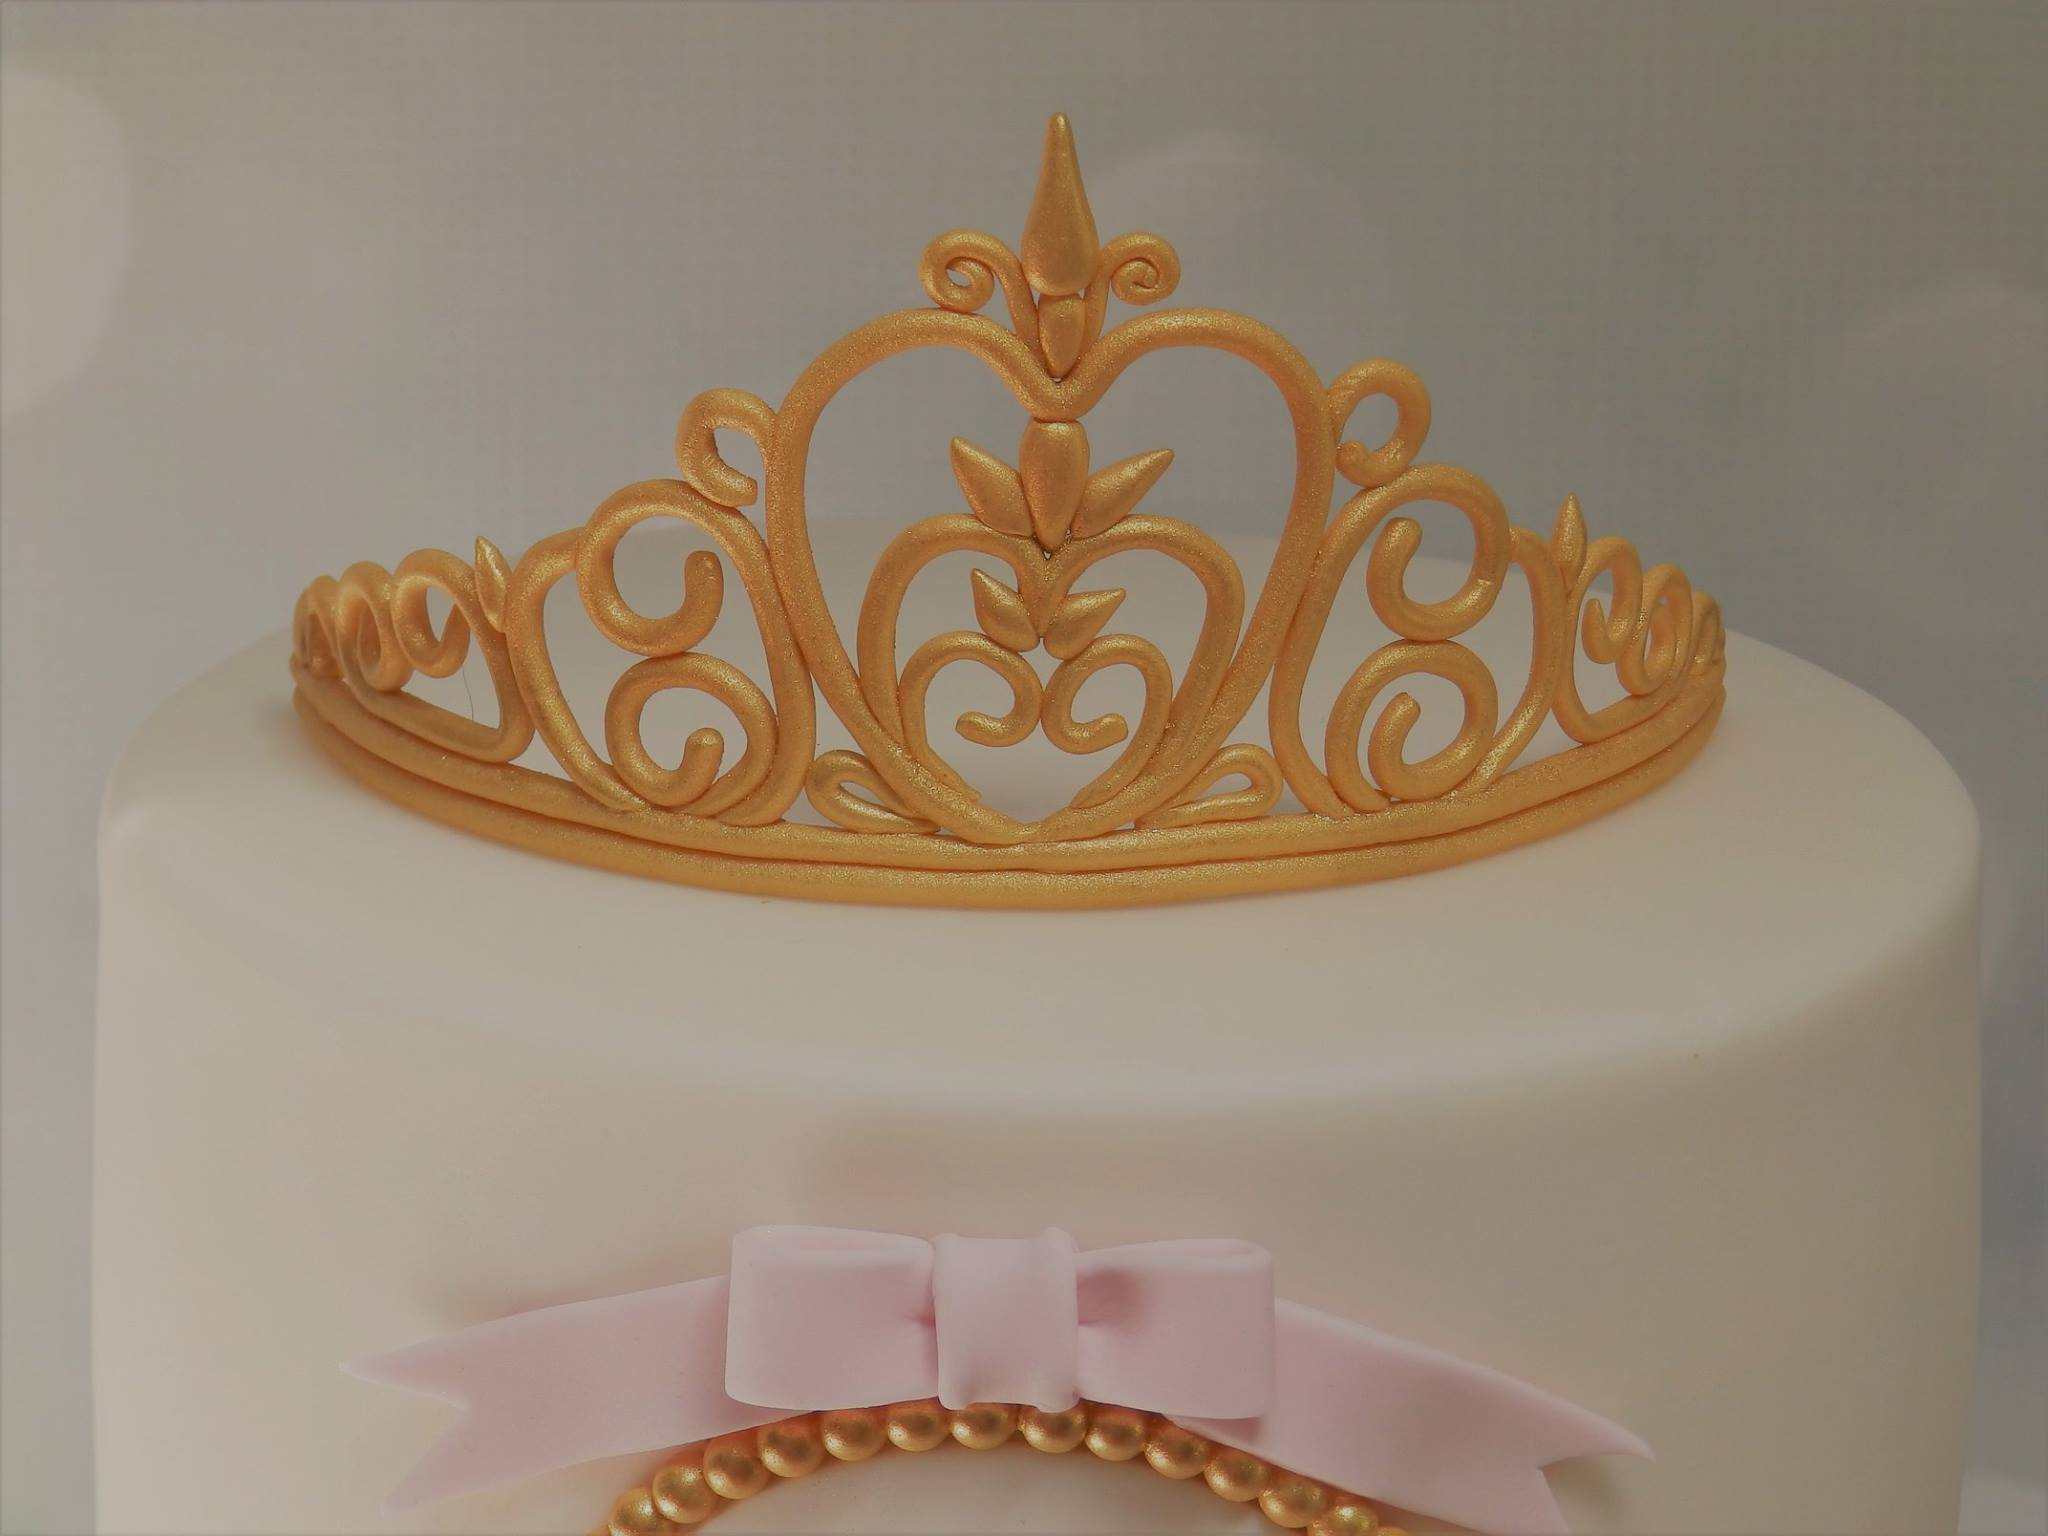 Cake with Edible Tiara